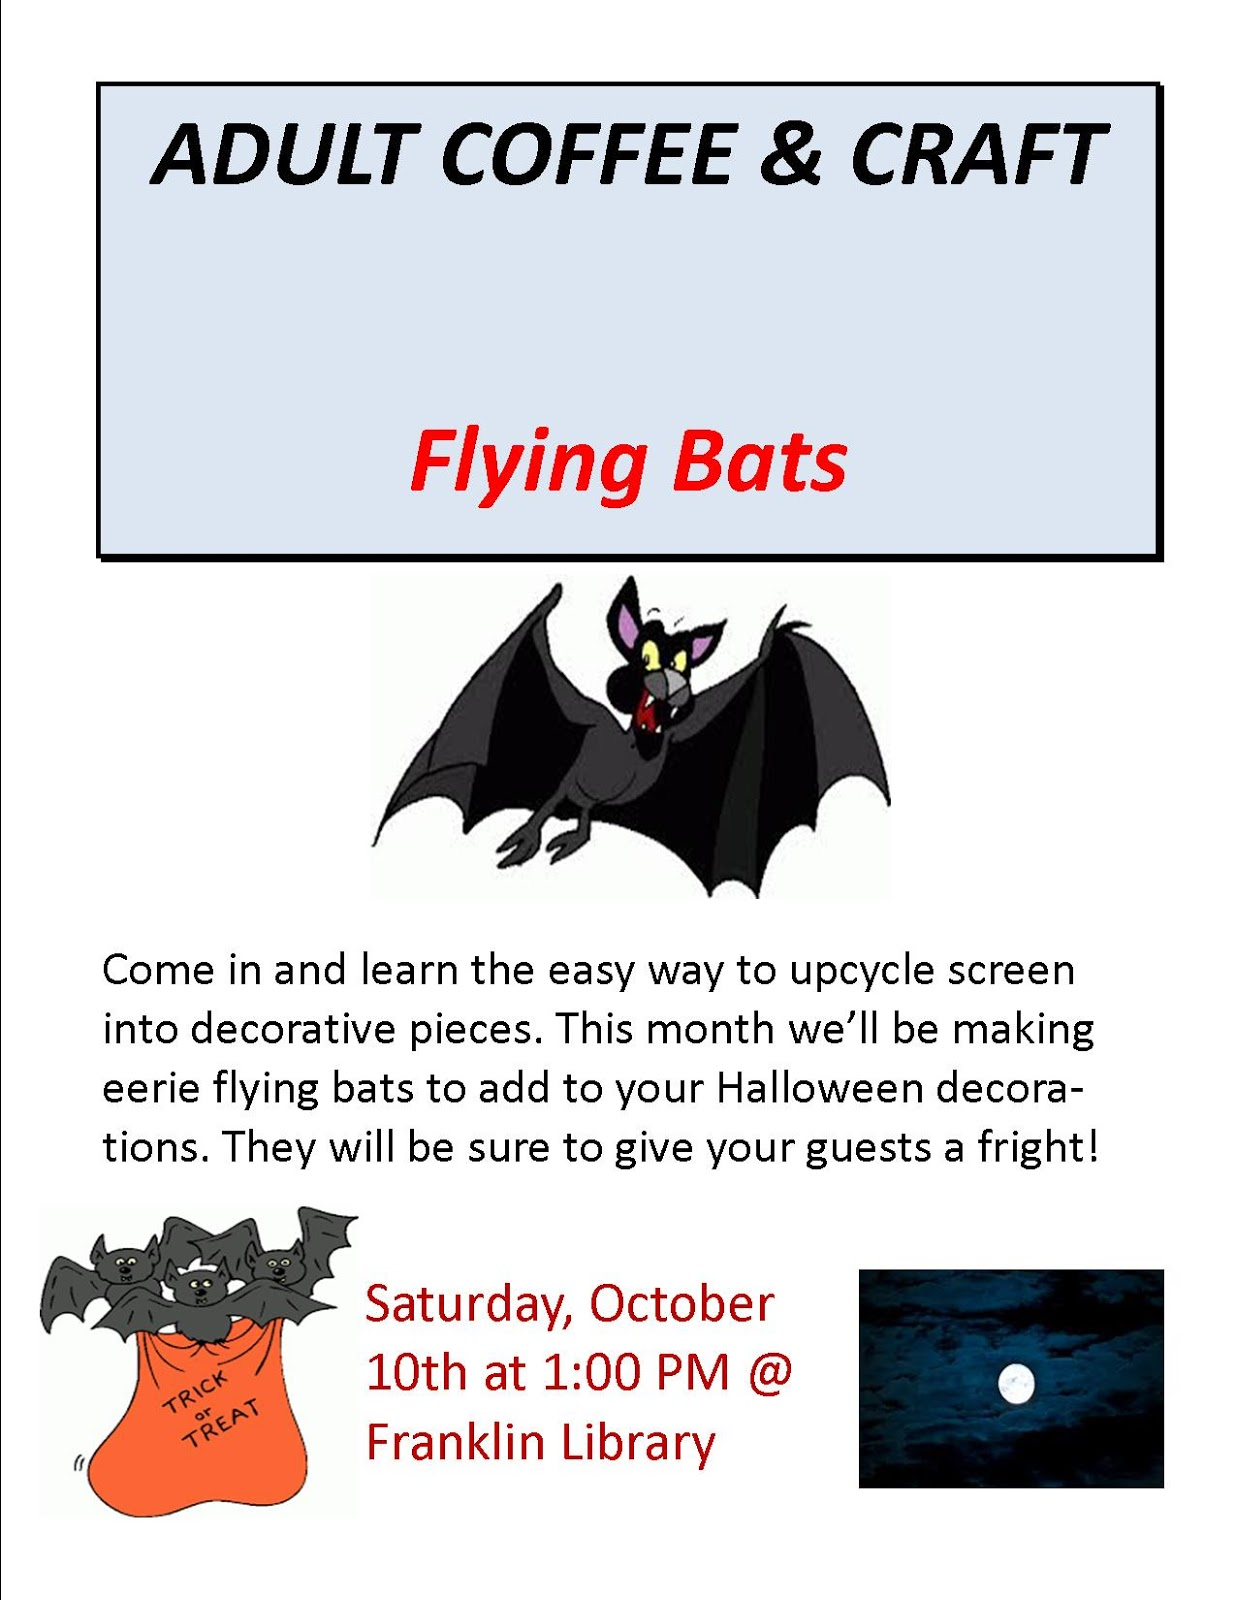 Library - adult coffee and craft - flying bats